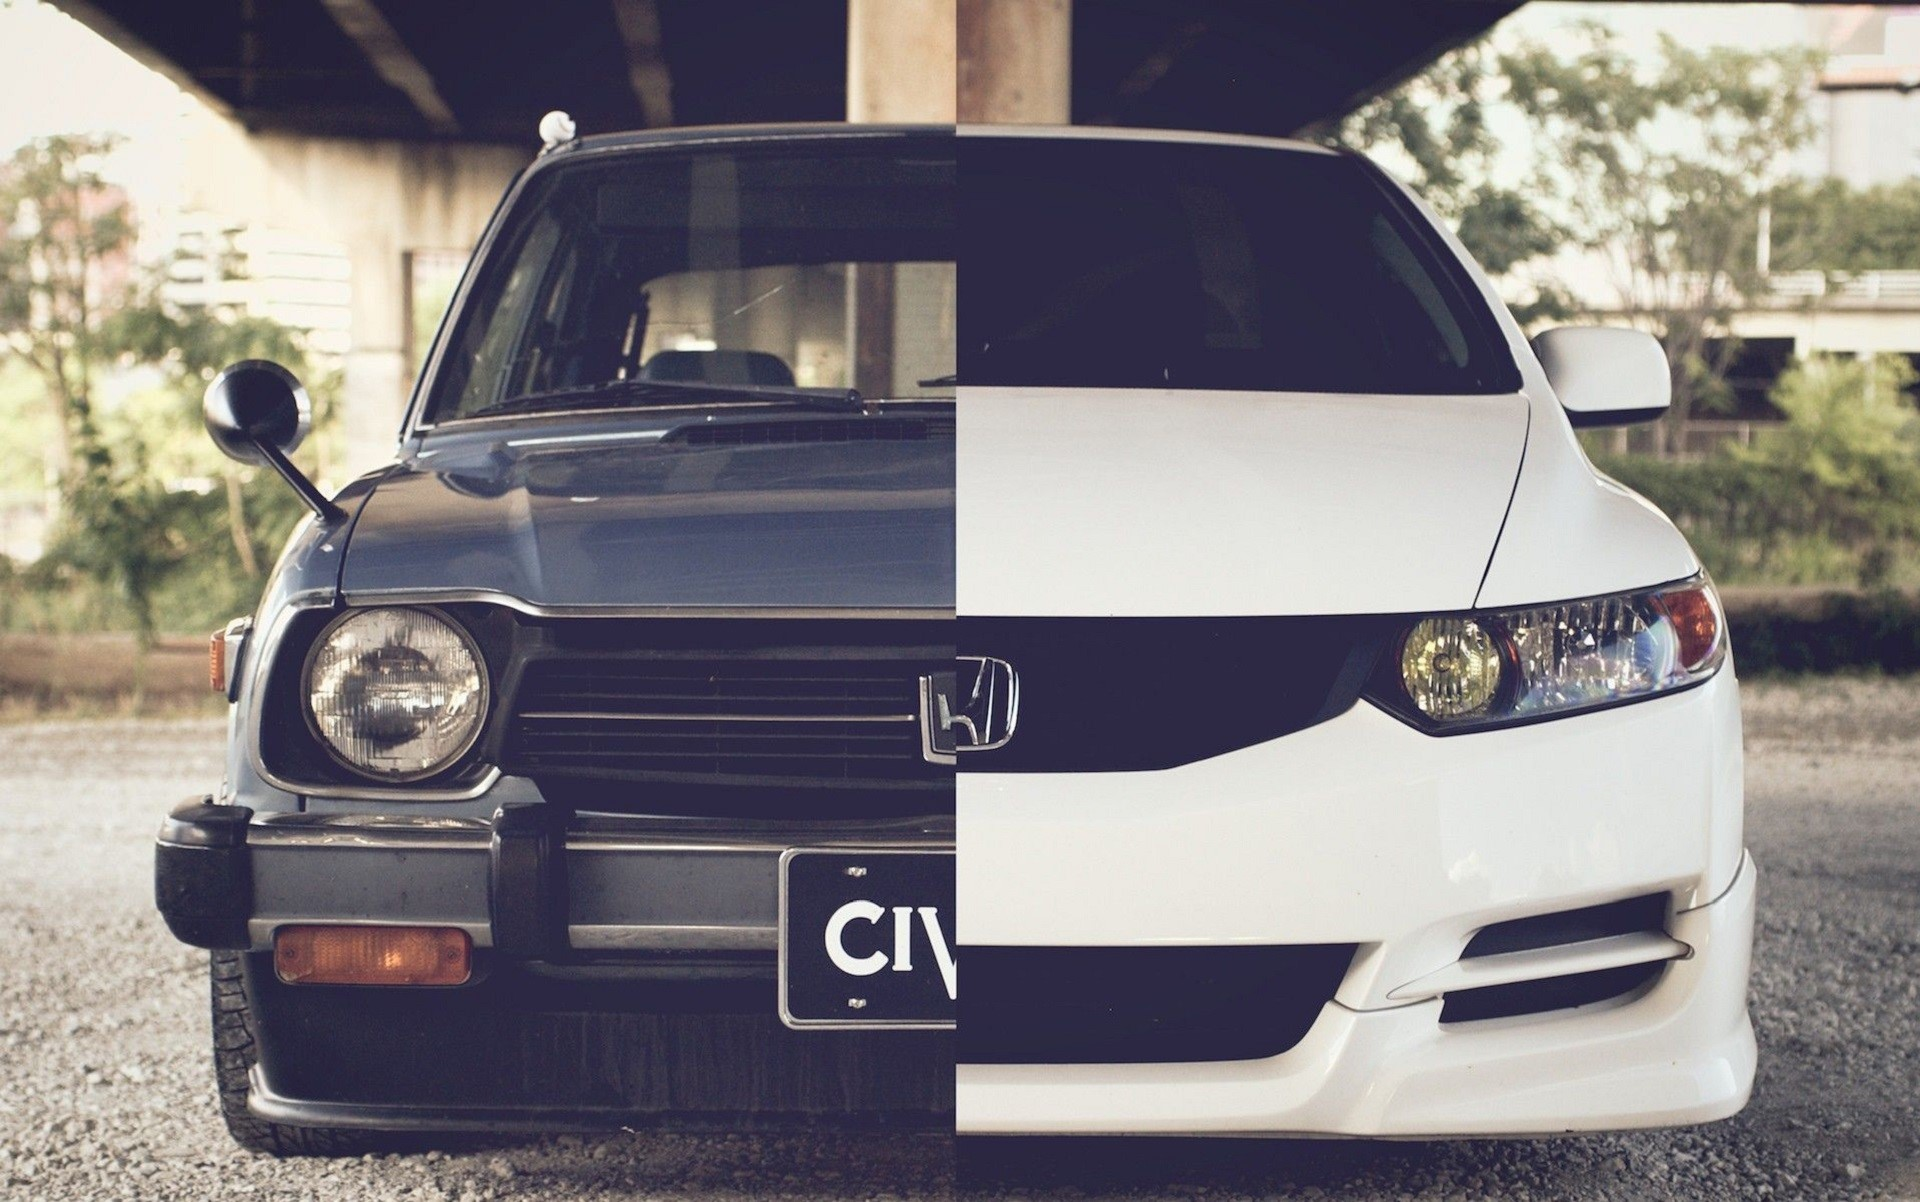 Honda Civic Desktop